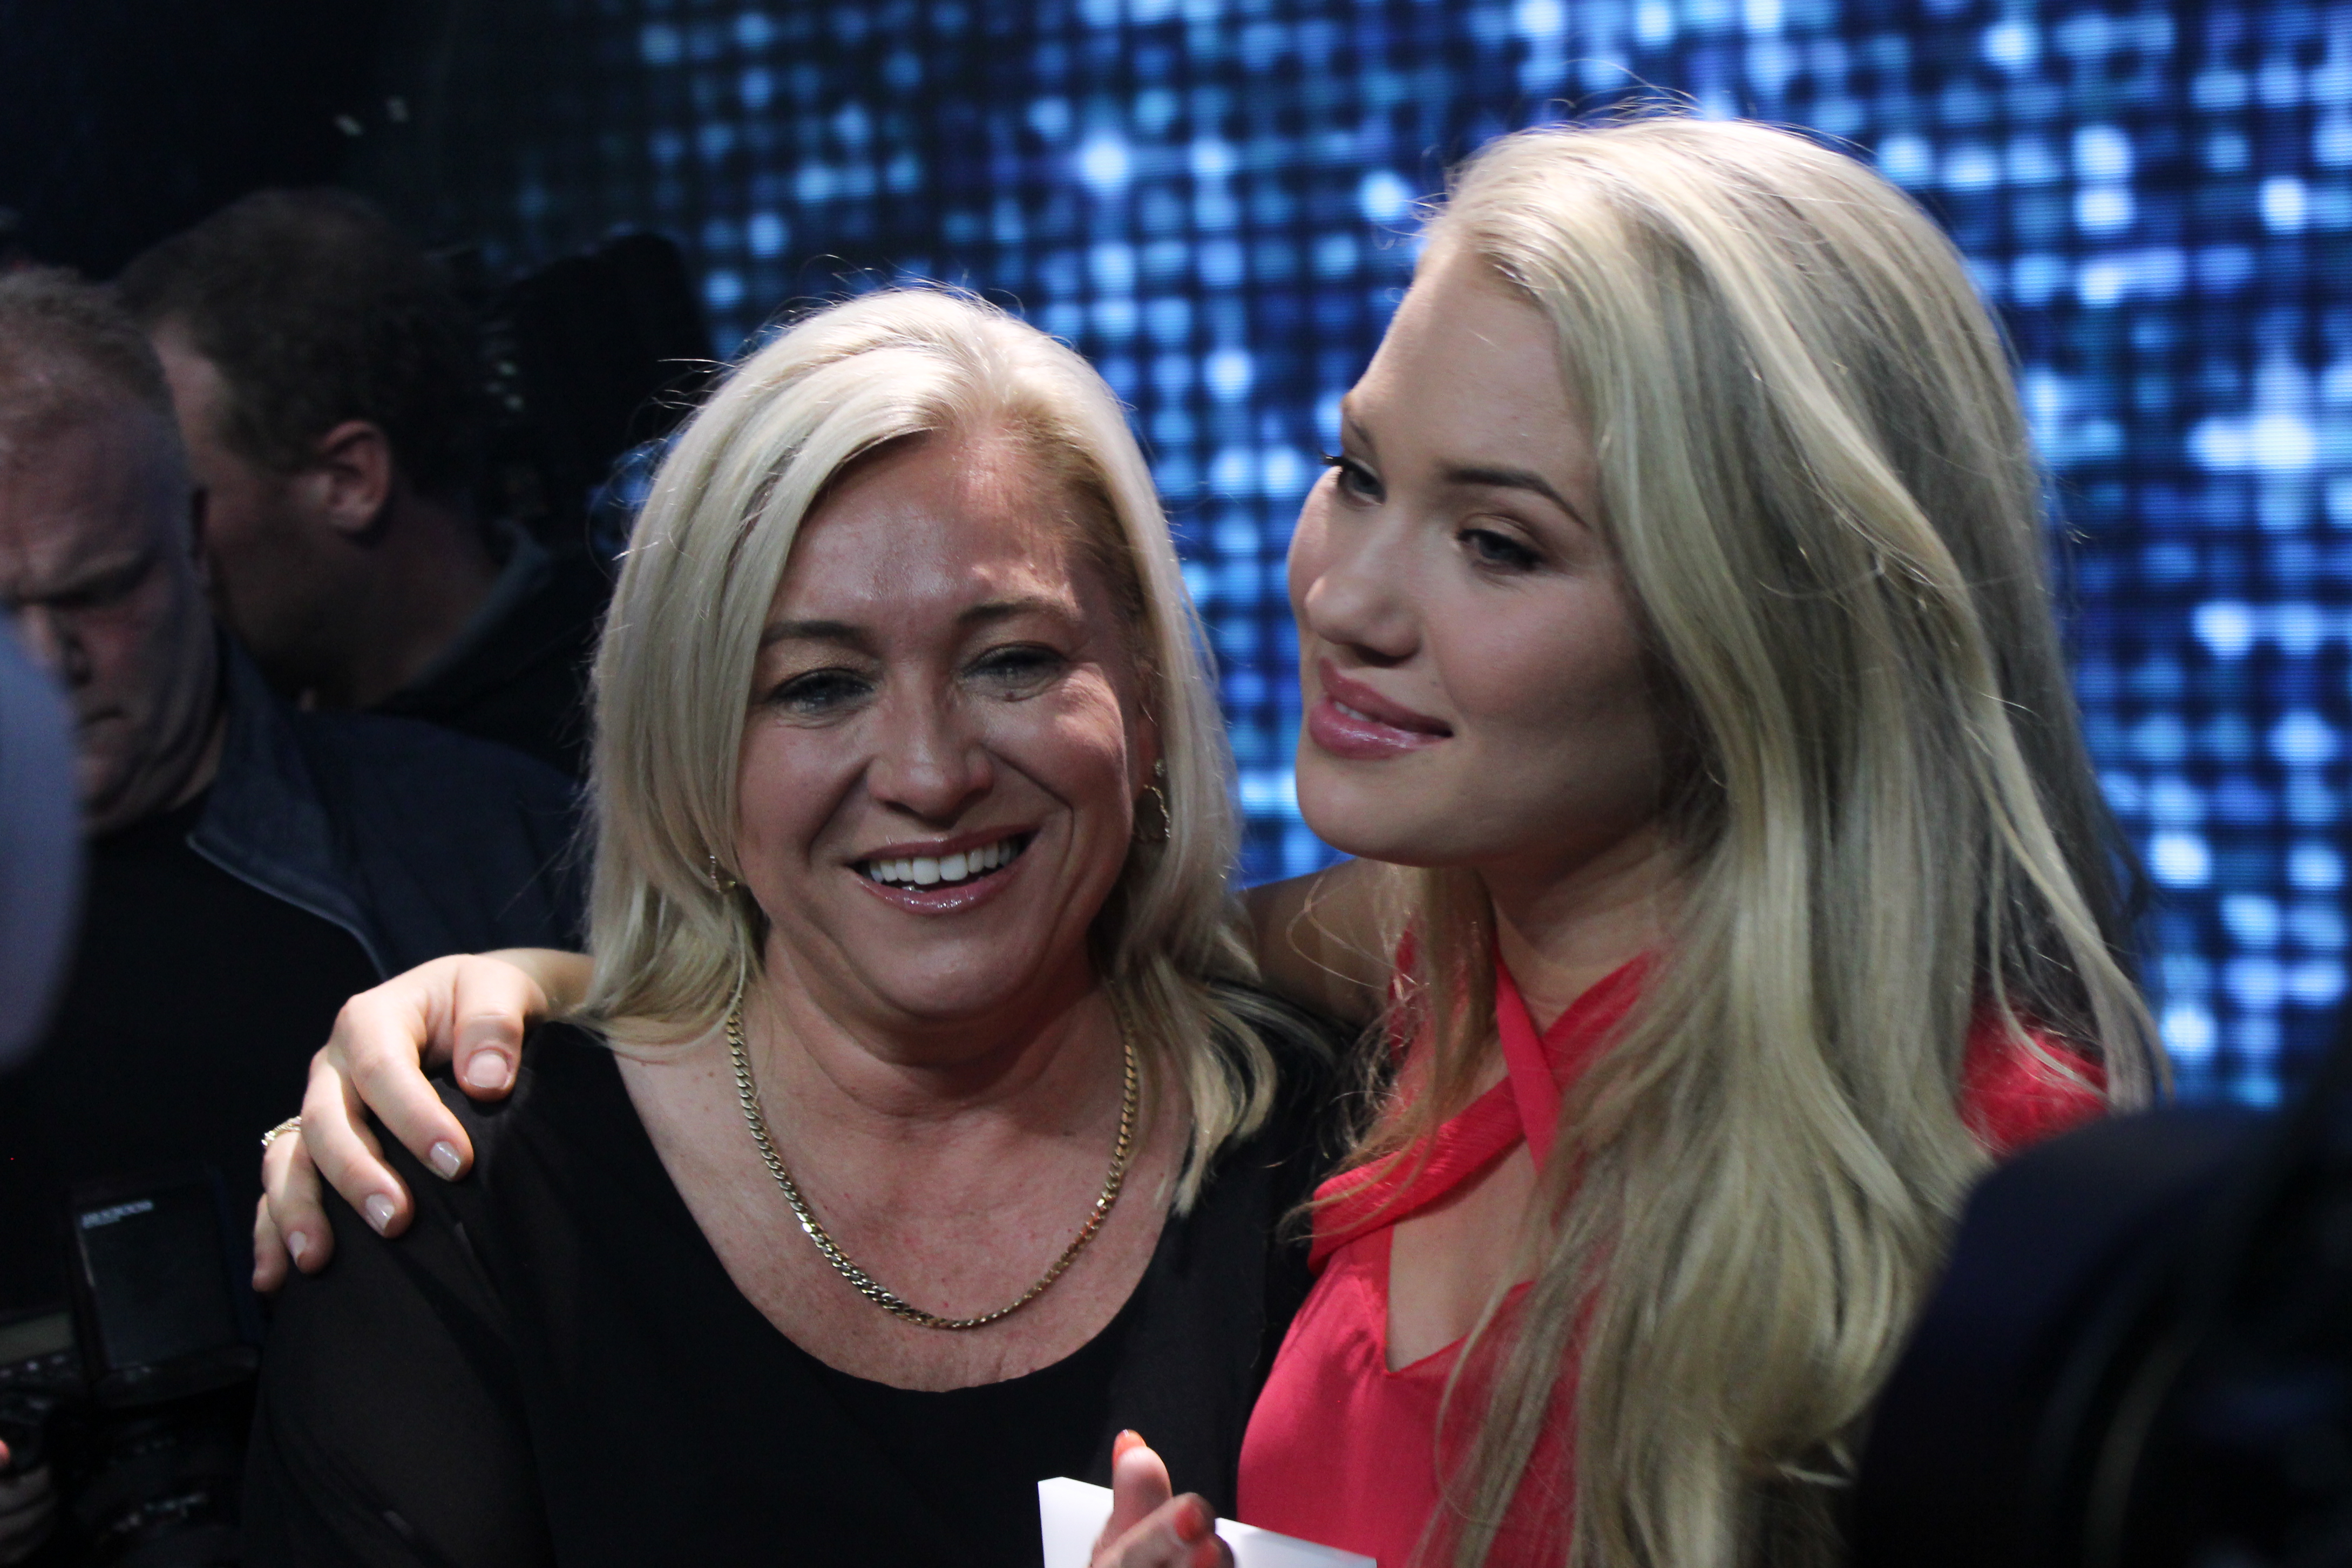 anja nissen with her mother eurovisionary eurovision news worth reading. Black Bedroom Furniture Sets. Home Design Ideas